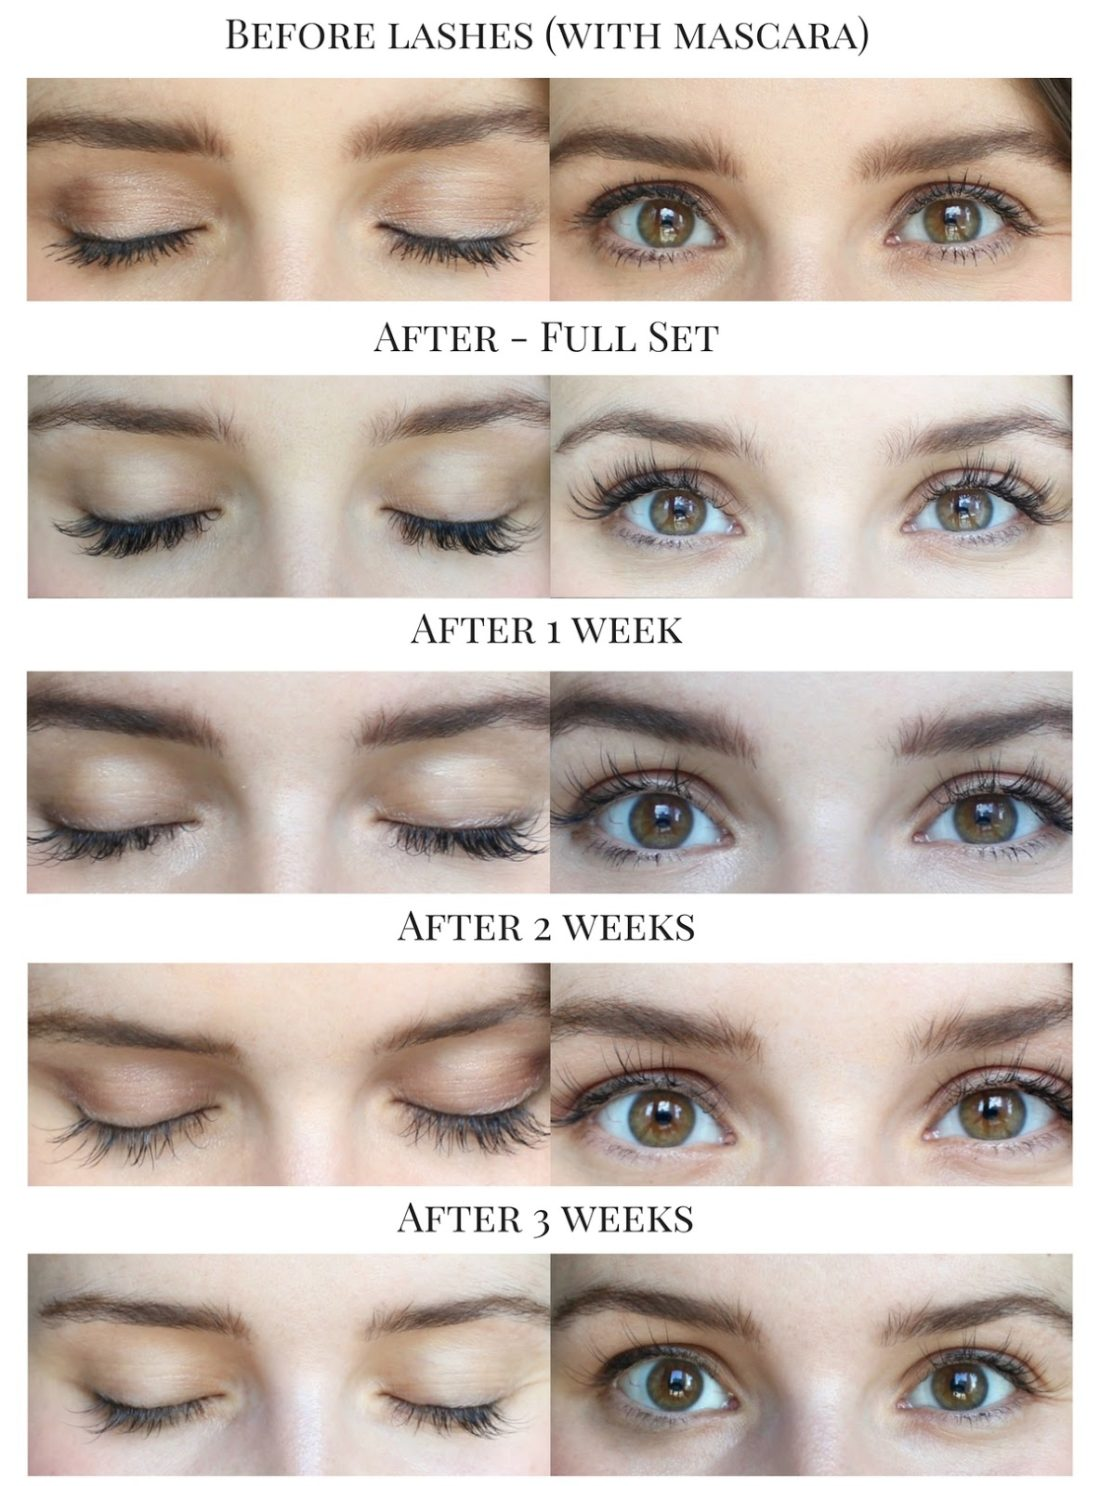 Mascara routine for long lashes